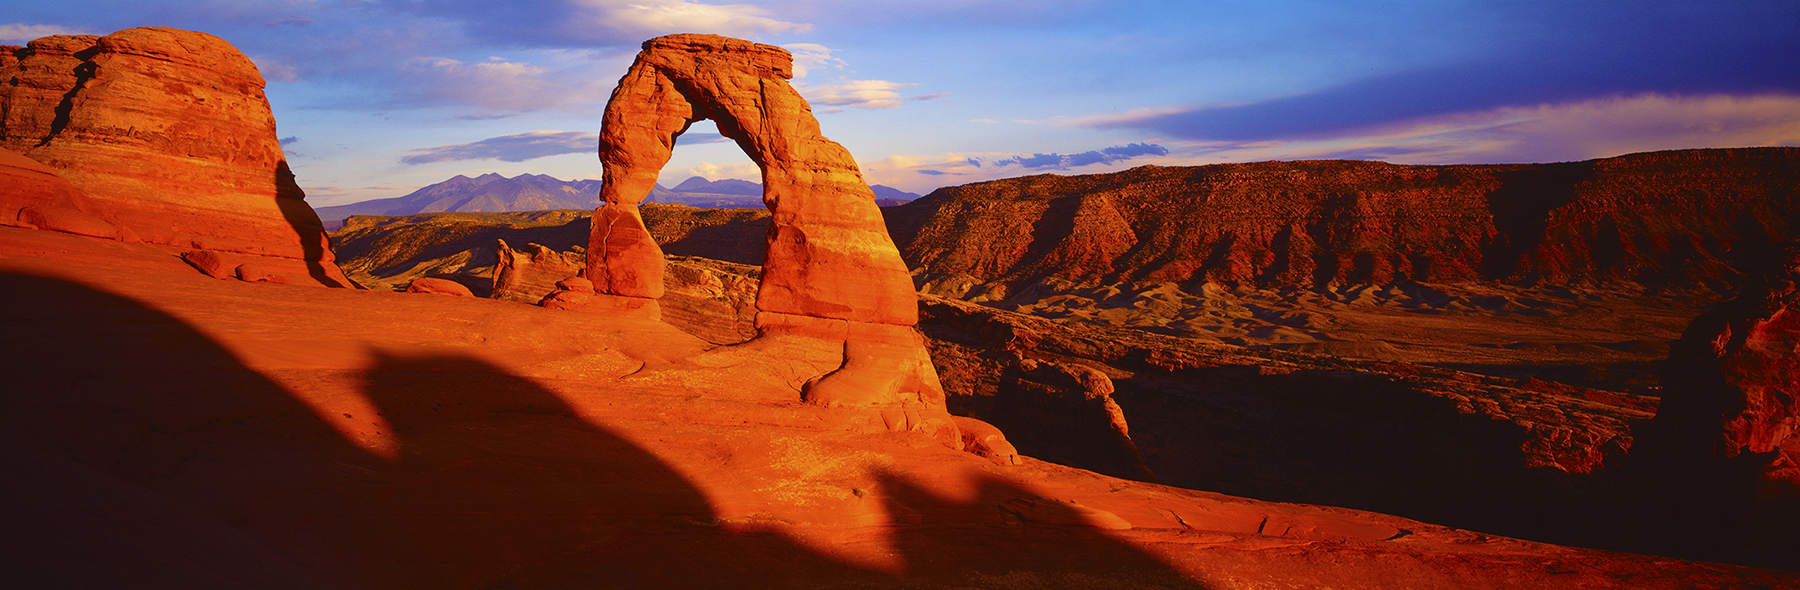 Delicate Arch, Arches National Park, USA. A Limited Edition Fine Art Landscape Photograph by Richard Hume